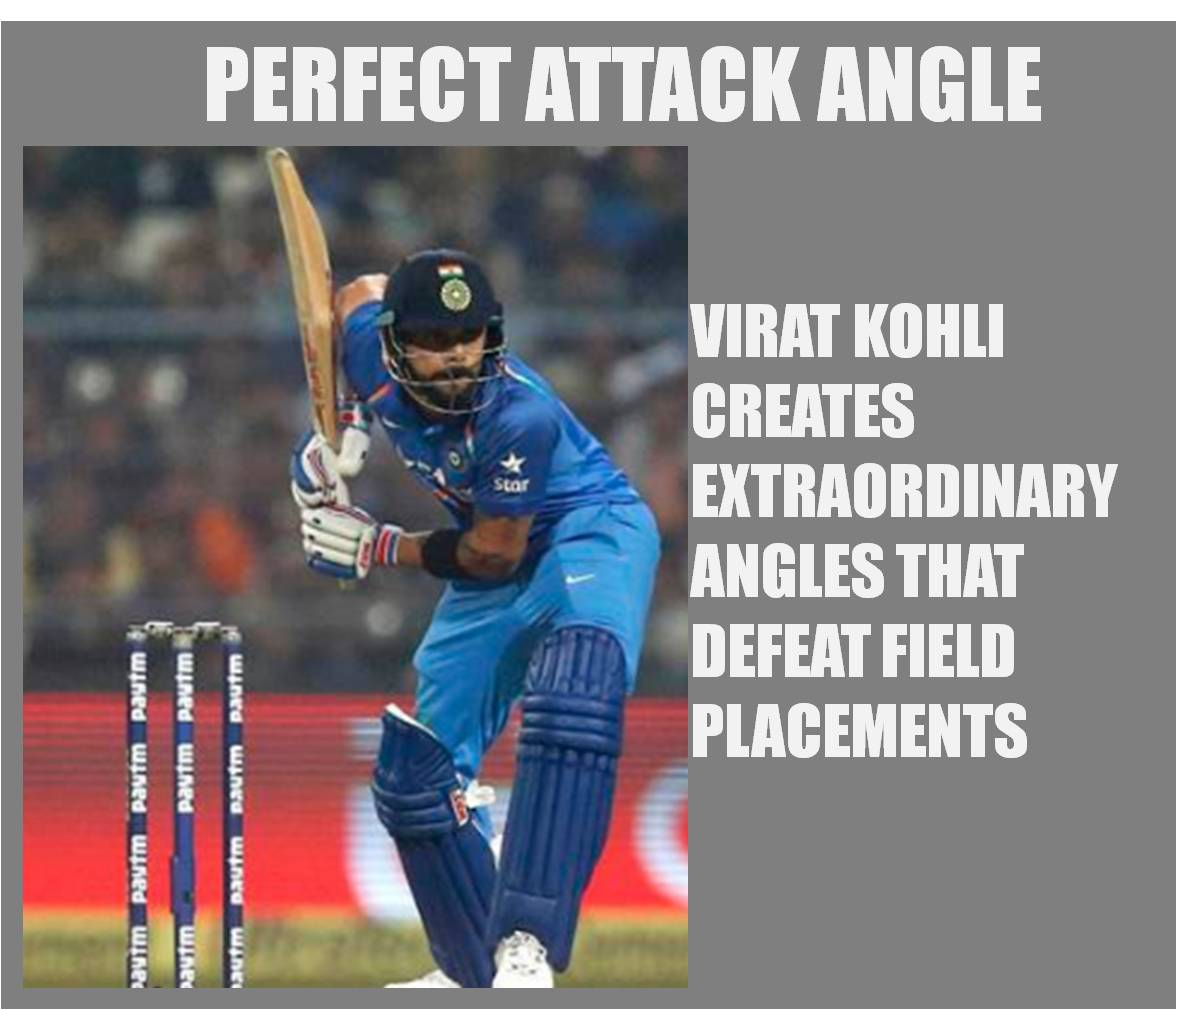 MRF_VIRAT_KHOLI_PLAYING_STYLE_PERFECT_ATTACK_ANGLE.jpg